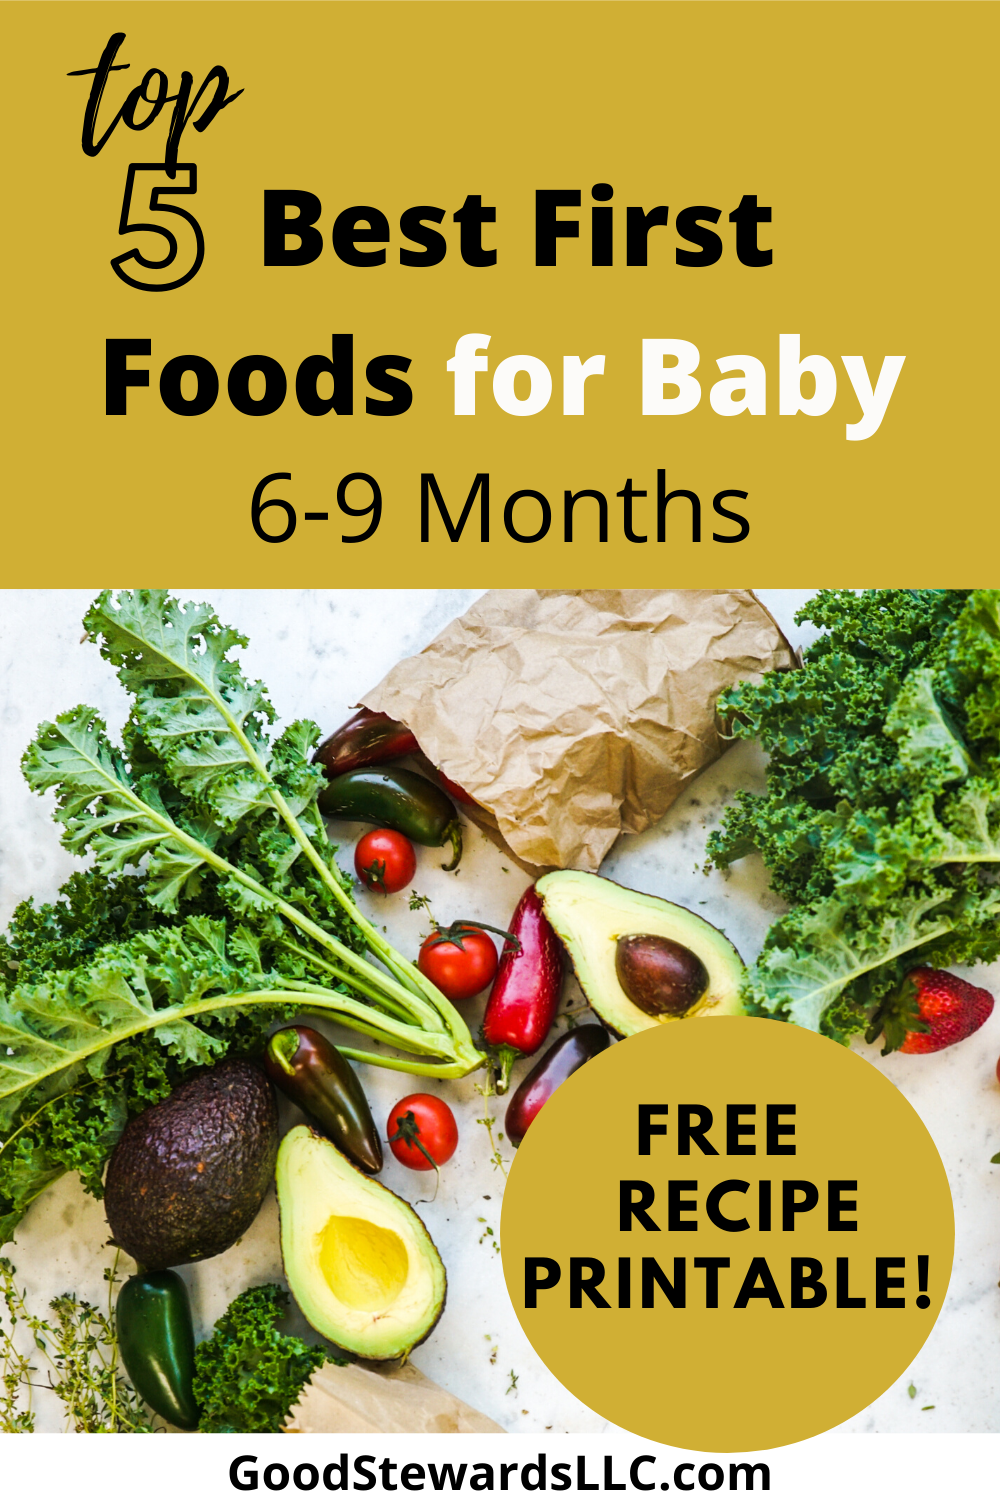 Step by step guide on how to make healthy, homemade baby food, with Free Printable baby food recipes! #homemadebabyfood #healthybabyfood #newmom #baby #babyfood #recipes #health #newmommy